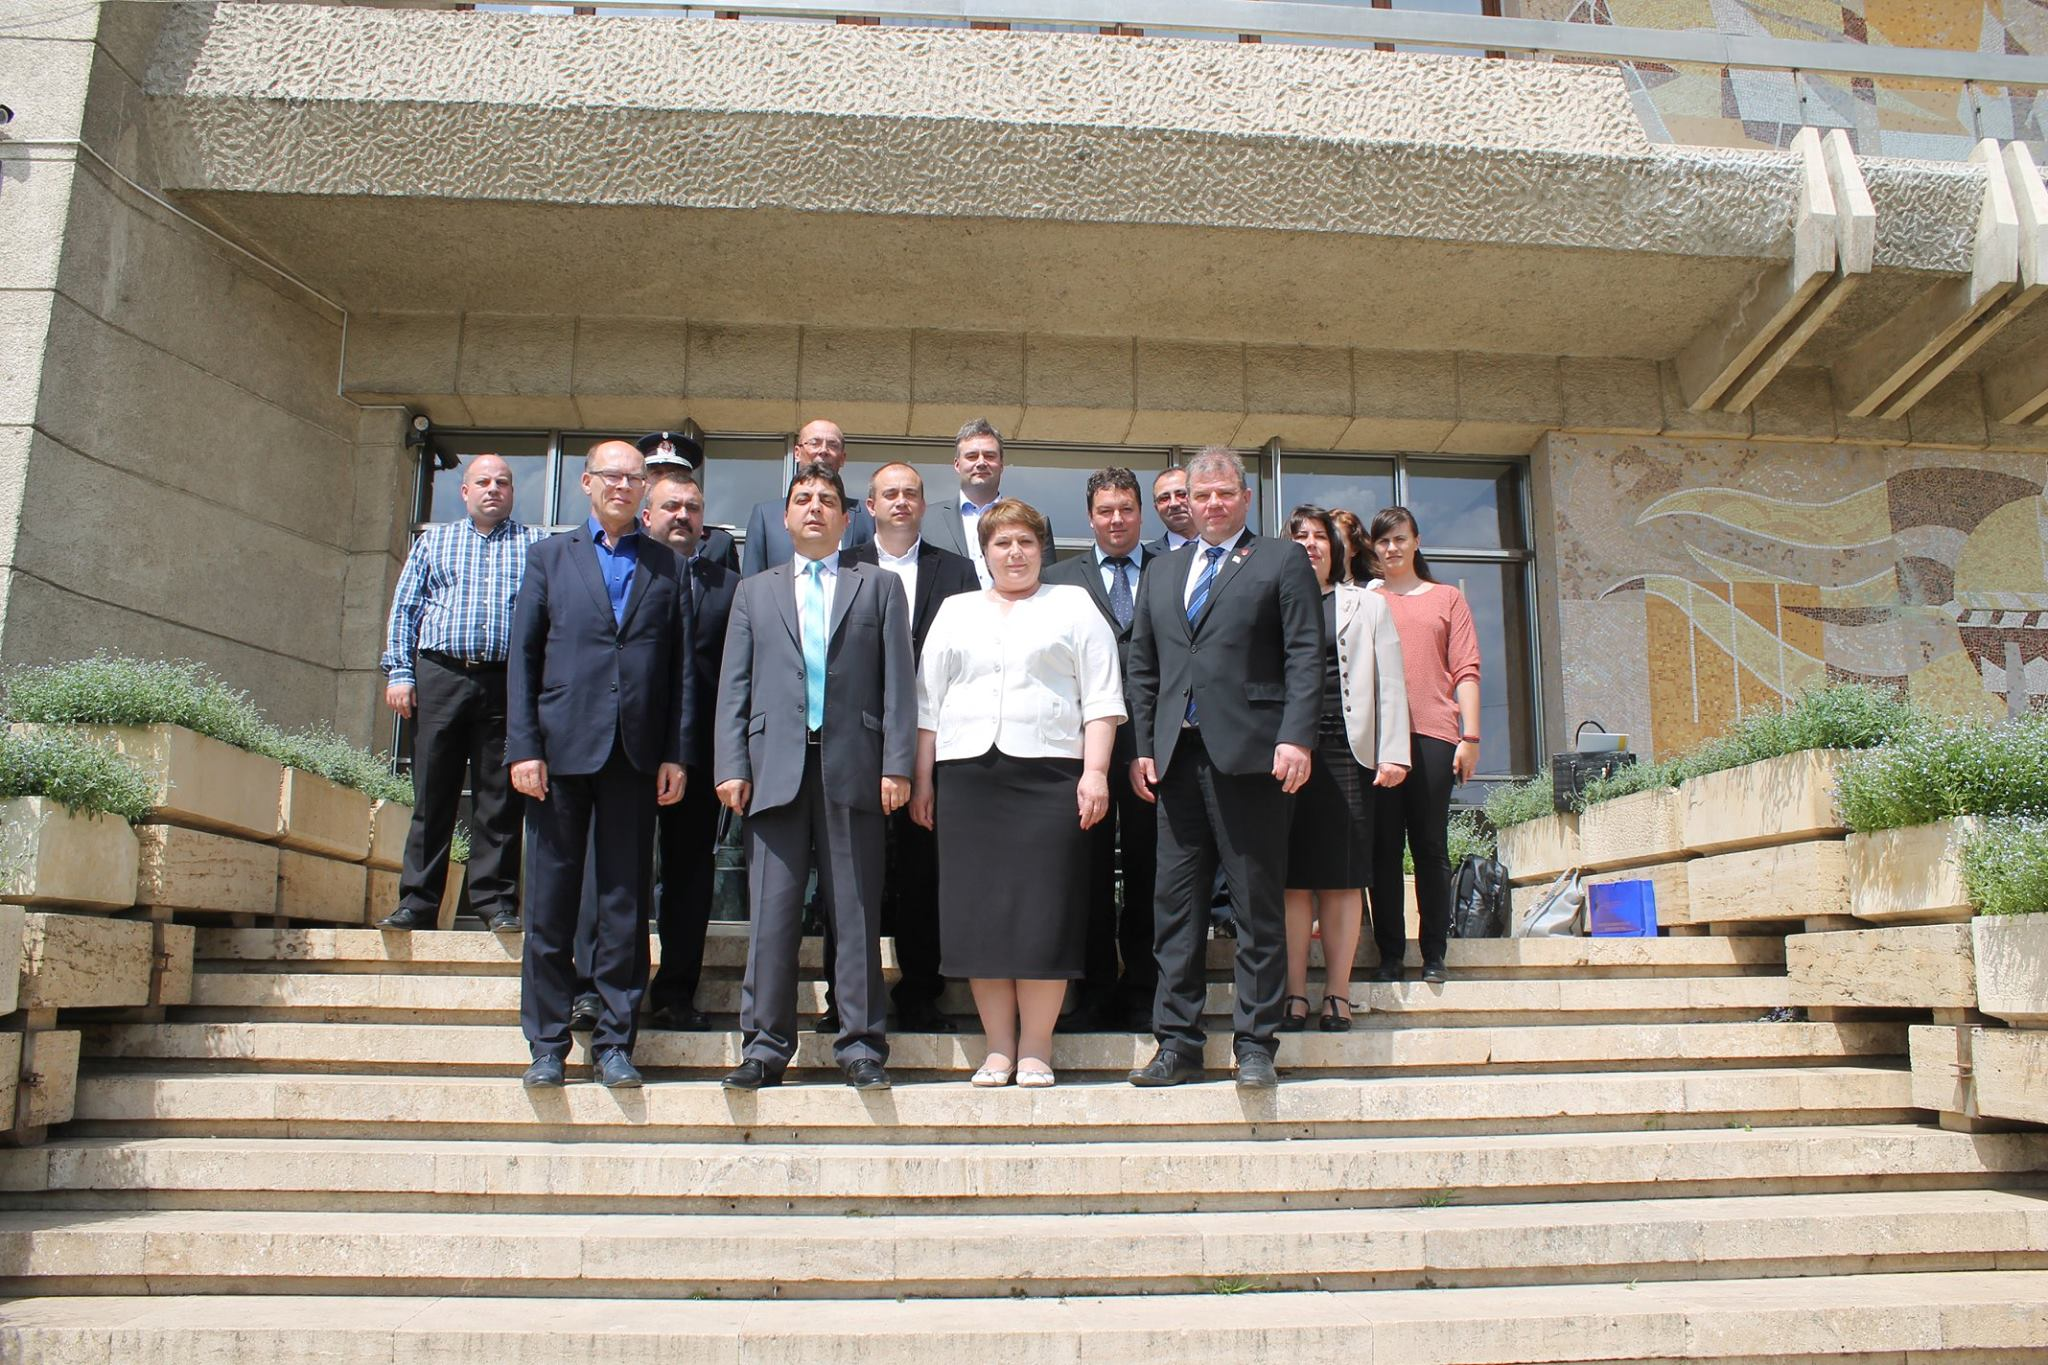 "<a class=""amazingslider-posttitle-link"" href=""http://www.euroregiune.org/en/may-4-iasi-meeting-green-hall-iasi-prefecture/"" target=""_self"">May 4, Iasi - Meeting at the Green Hall of the Iasi Prefecture</a>"